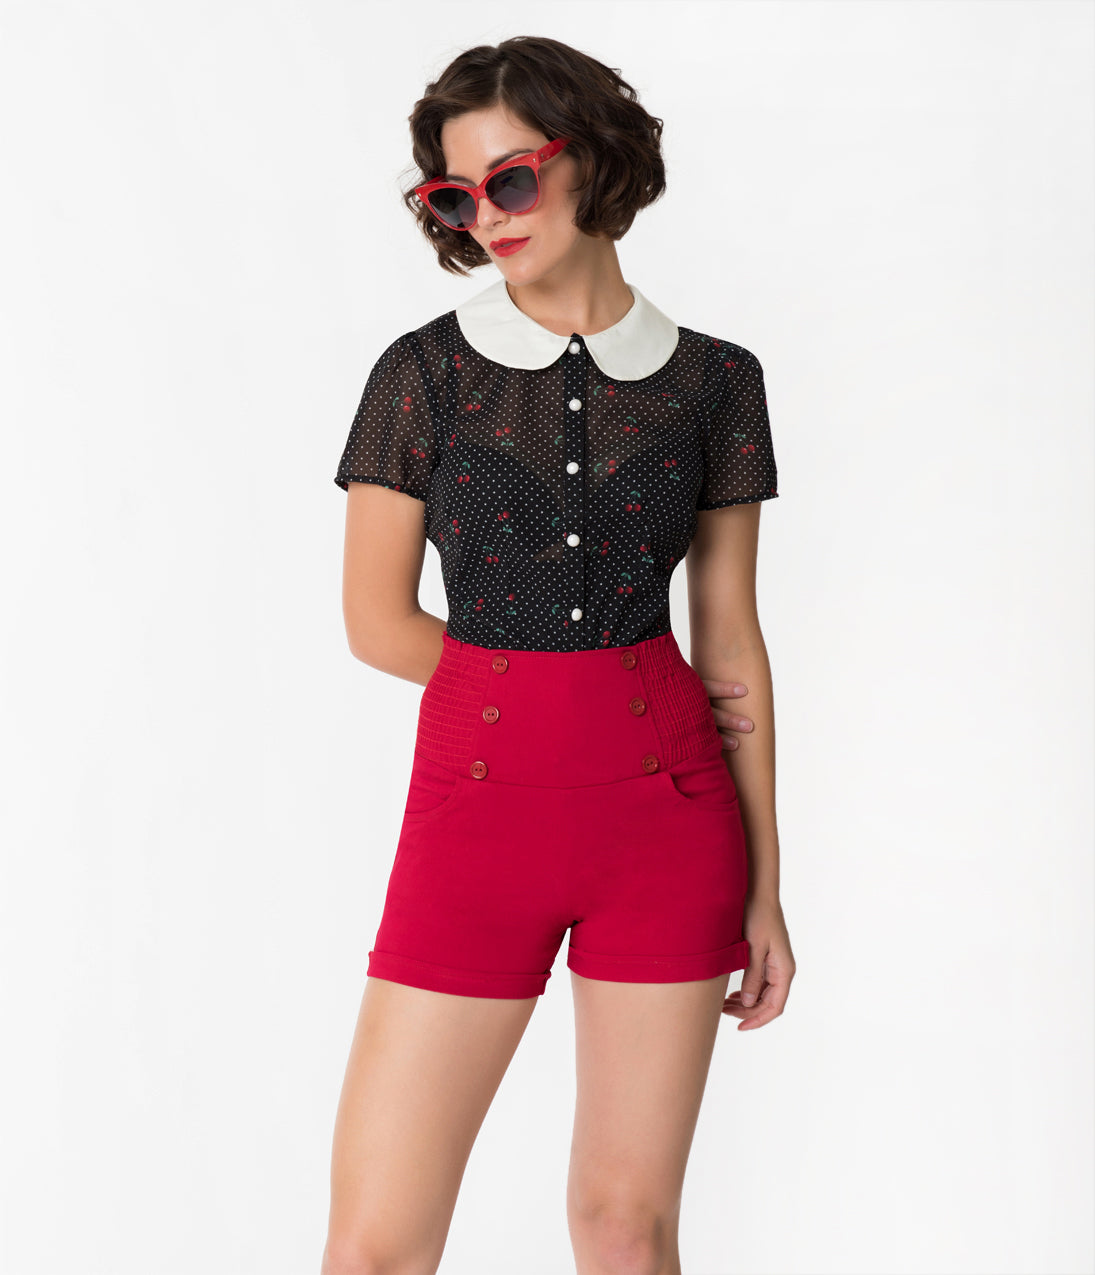 Vintage High Waisted Shorts | 1950s Pinup, Rockabilly Shorts Hell Bunny Black  Cherry Print Chiffon Sophie Blouse $46.00 AT vintagedancer.com